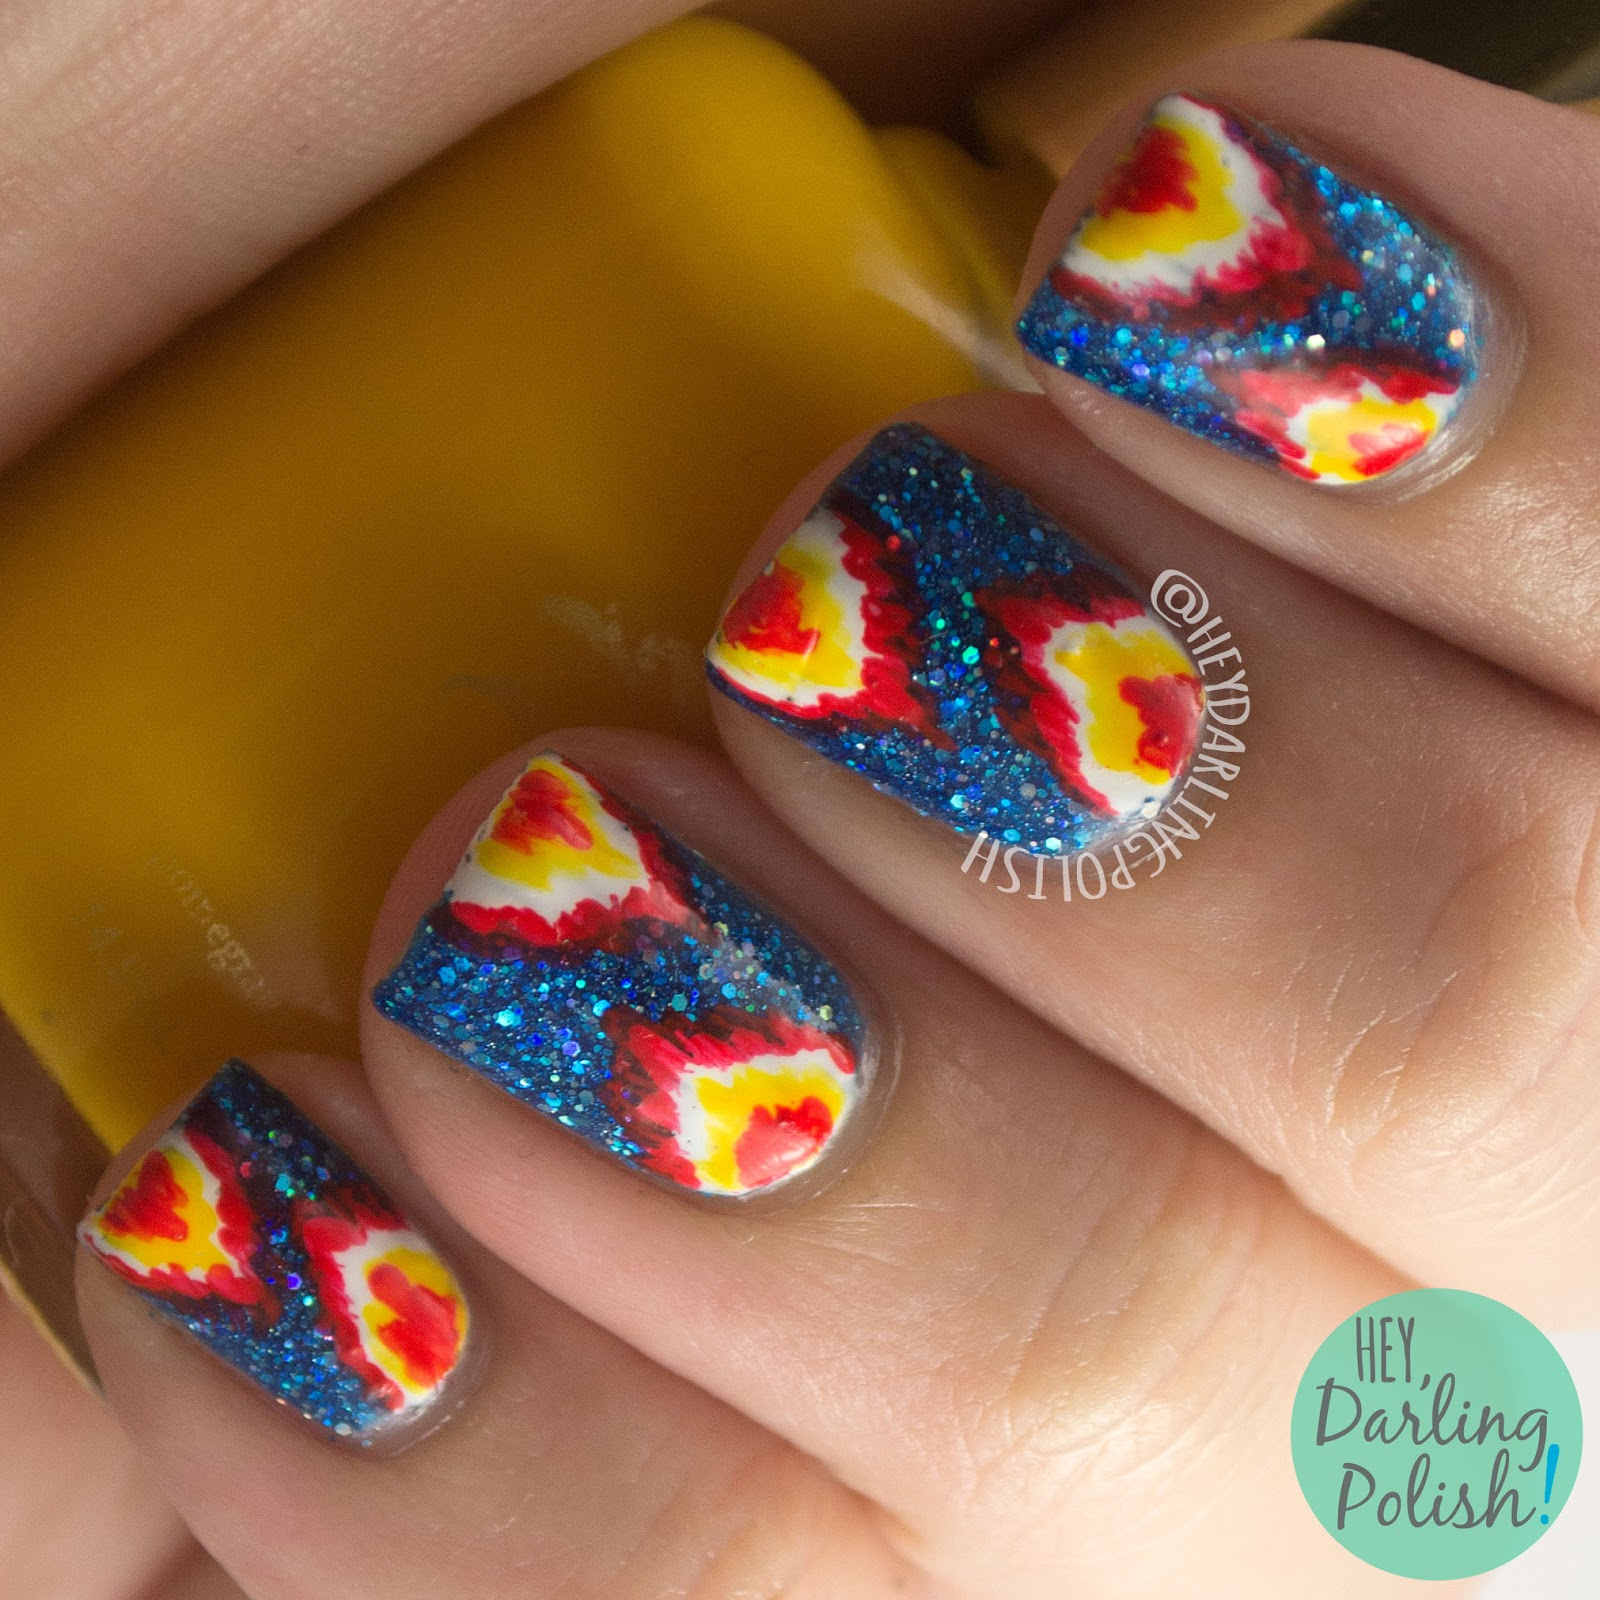 nails, nail art, nail polish, indie, indie polish, blue, red, yellow, ikat, tri polish challenge, hey darling polish